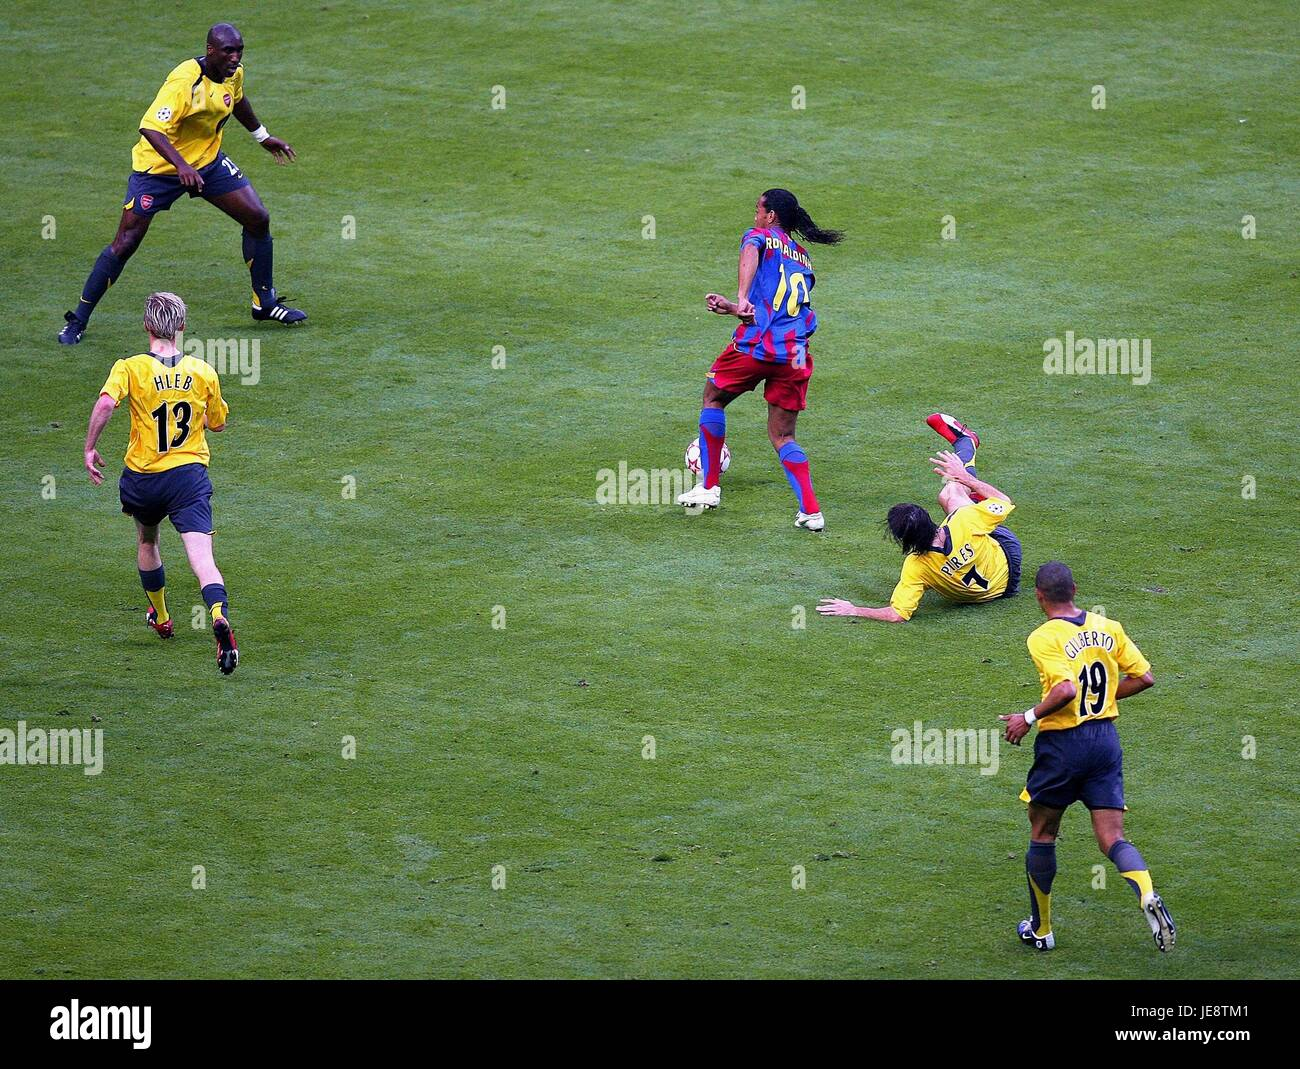 CAMPBELL RONALDINHO & PIRES FC BARCELONA V ARSENAL STADE DE FRANCE PARIS FRANCE 17 May 2006 - Stock Image